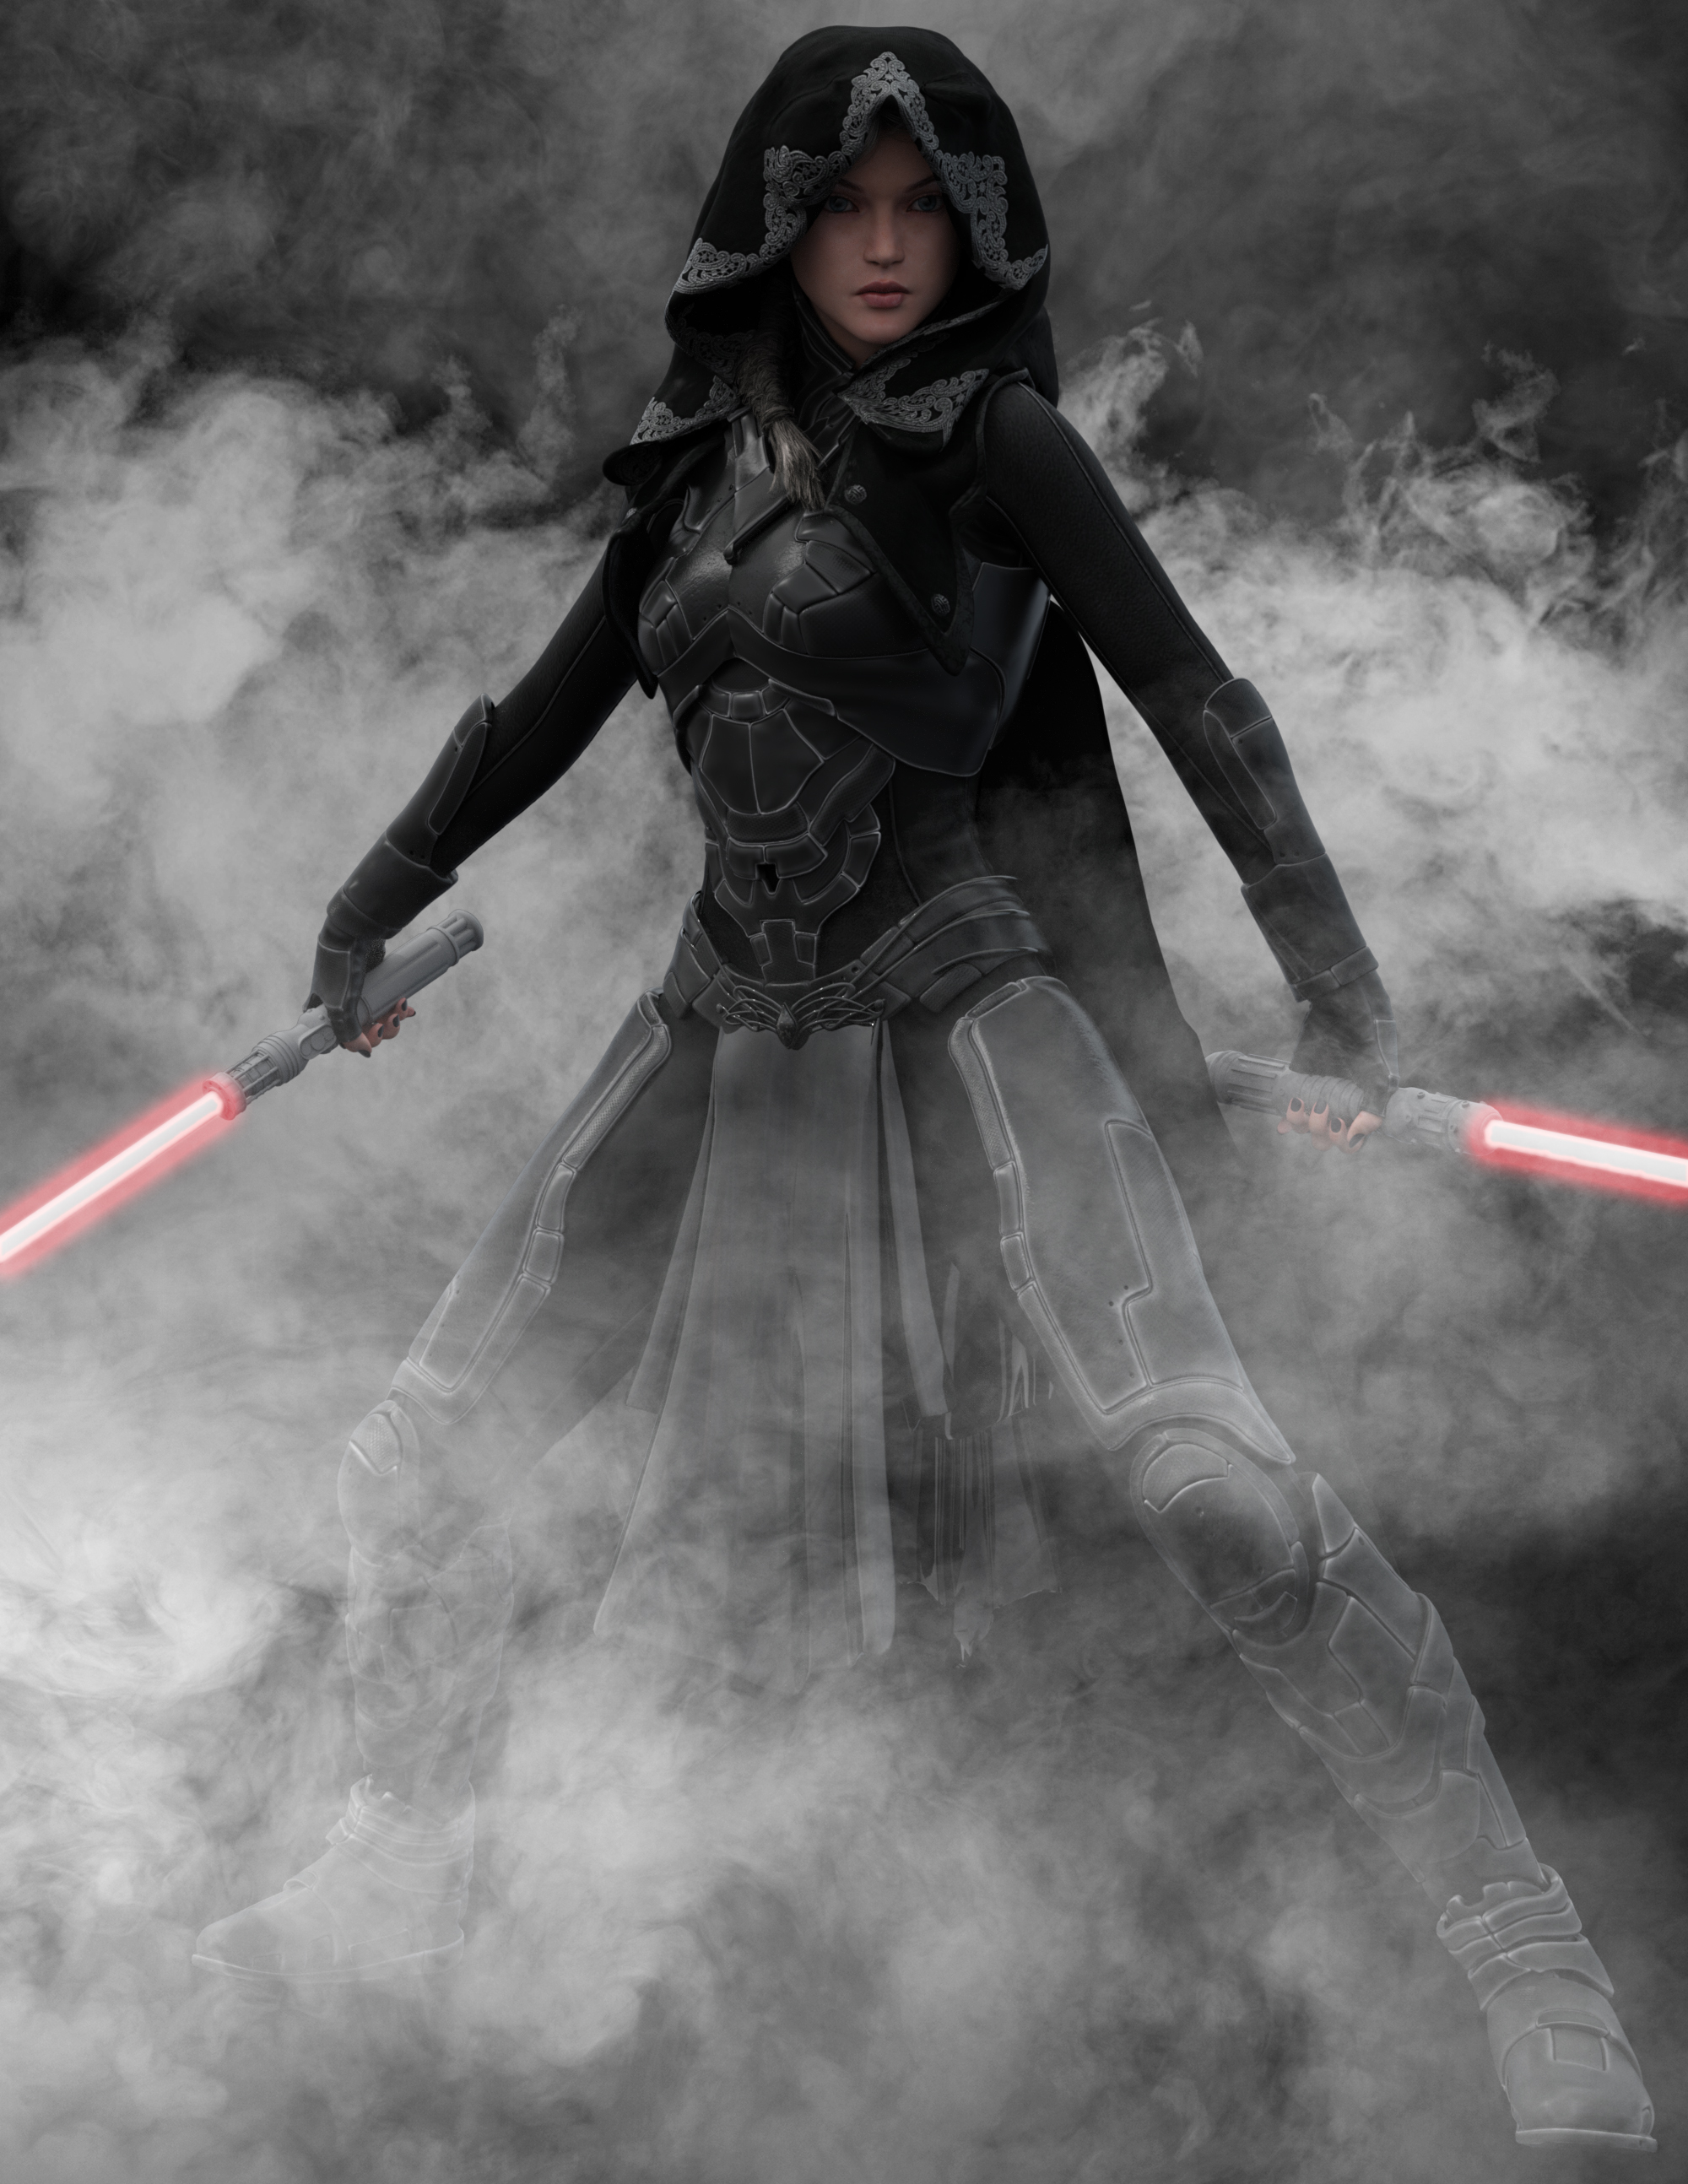 Dark Jedi by chrisryder123